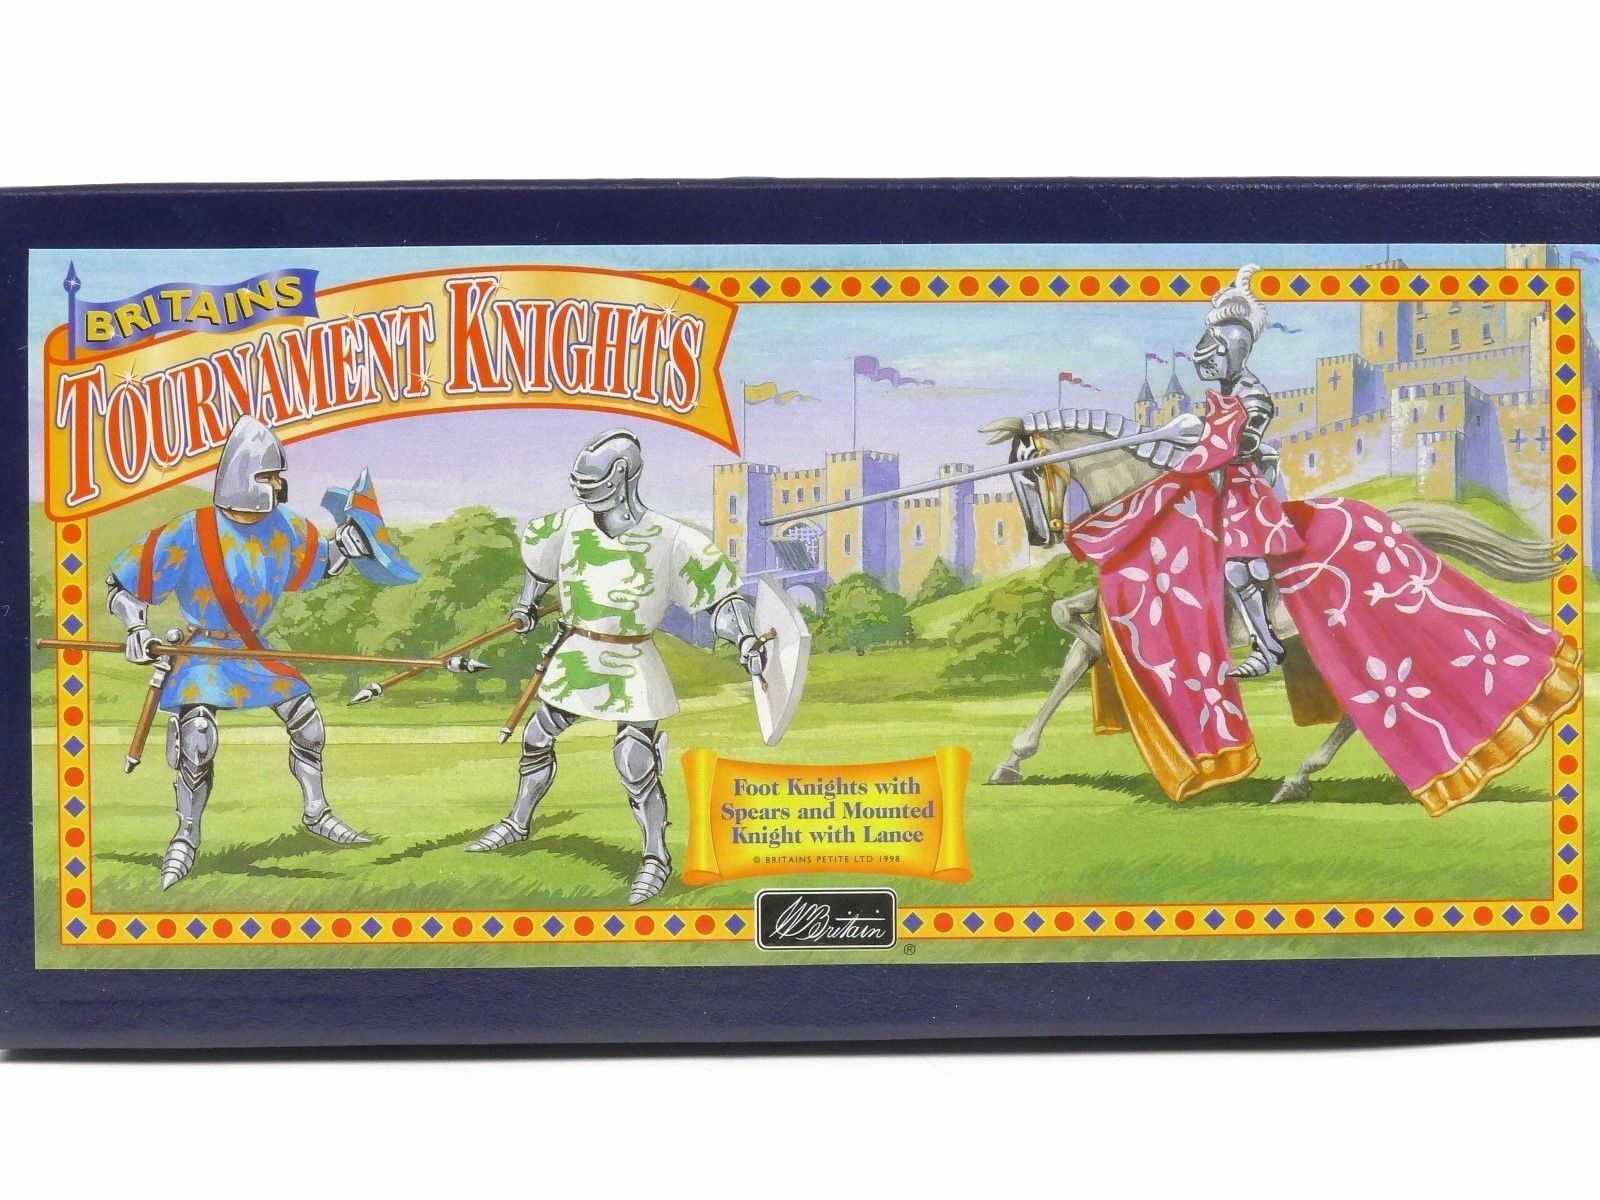 W Britain 08763 - Foot Knights with Spears & Mounted Knight with Lance